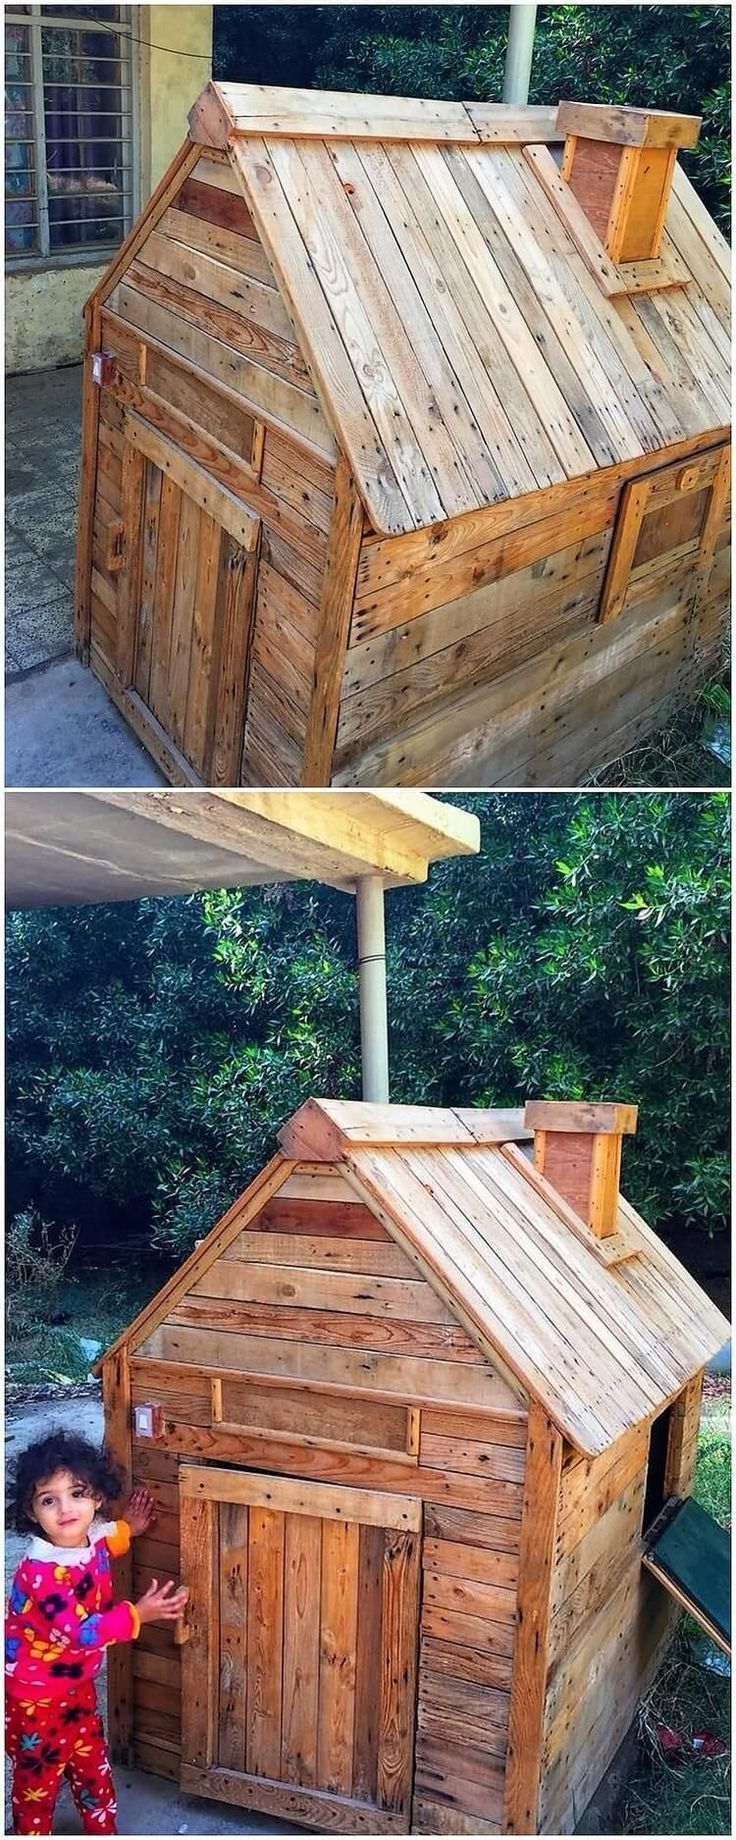 Wood pallet is not just meant for the house furniture decoration and this is much evident from this image wood pallet idea! See how simply and in creative way, this wood pallet has been used as the outdoor playhouse structural design effect. It can purposely be used in your garden house concept work. #outdoorplayhouseideas #gardenplayhouse